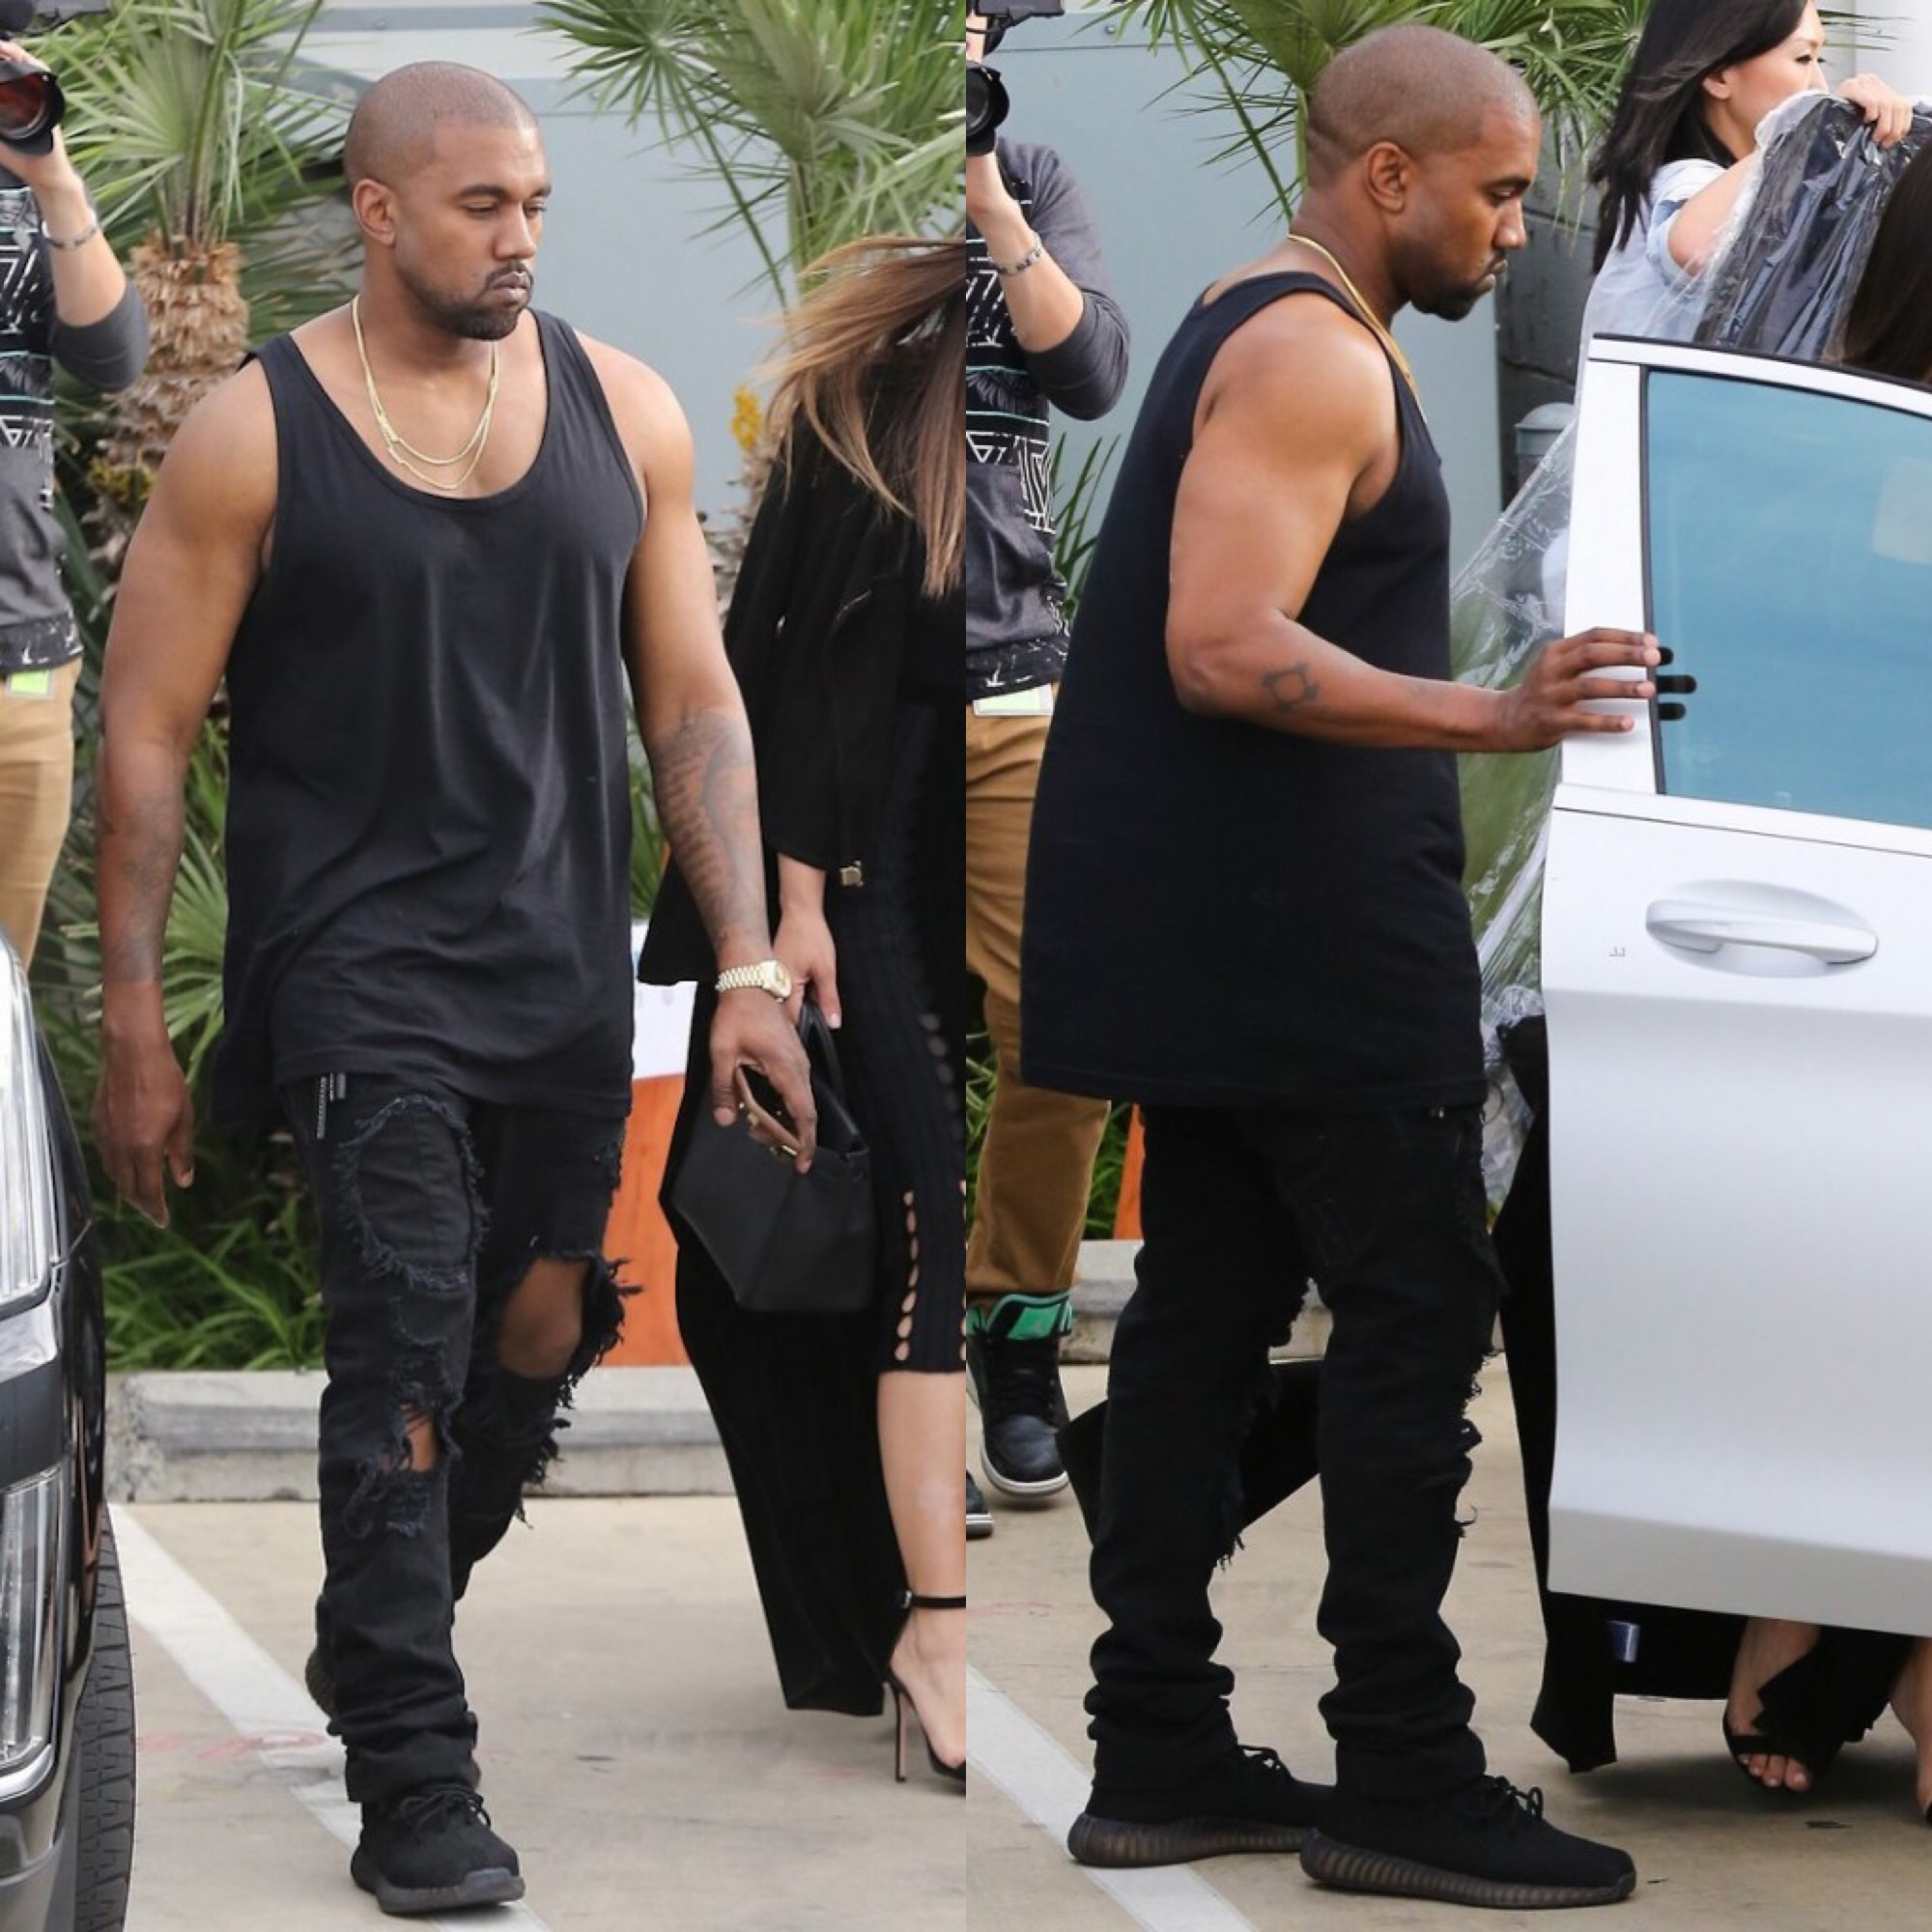 Spotted: Kanye rocking Yeezy Season 4 Shredded Jeans